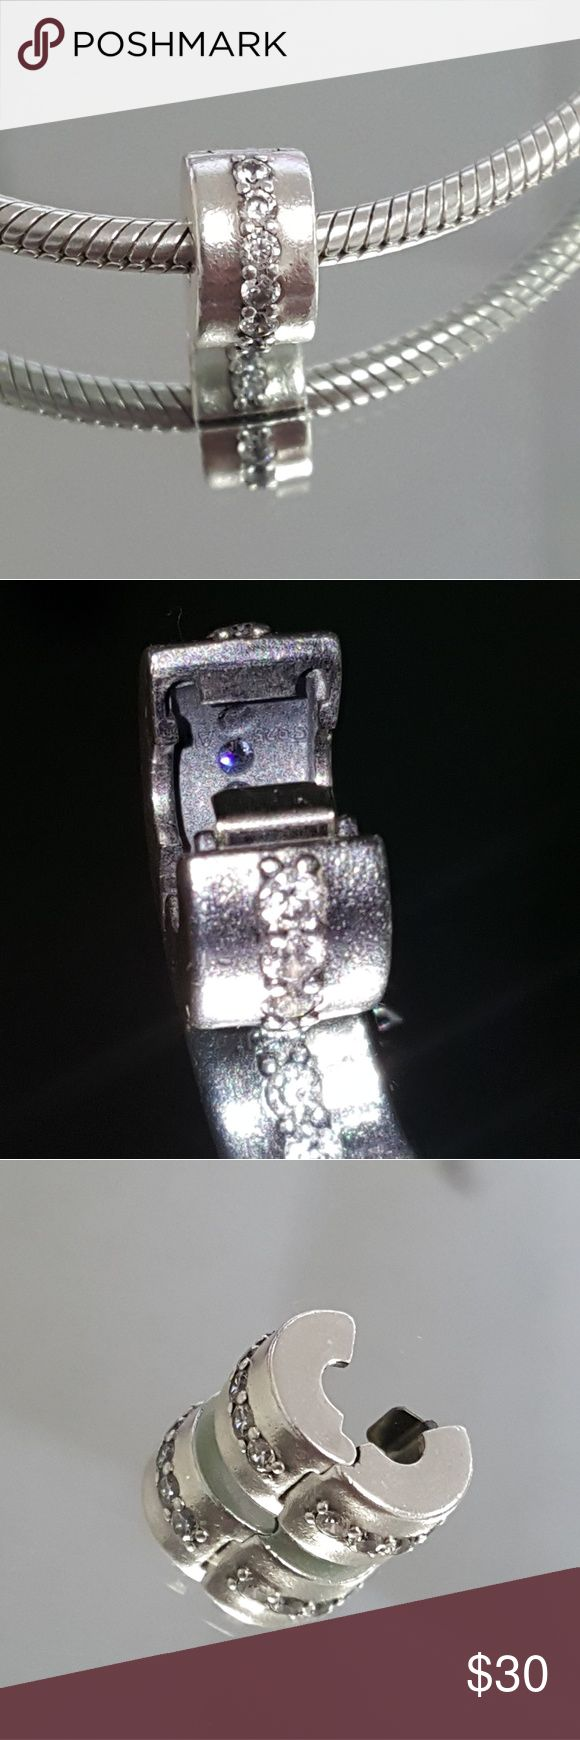 Pandora Shining Path clip(1) Authentic Pandora Listing is for 1, I only have 1 Every Charm is in LIKE NEW condition Worn a few times for show Price firm Bundle up to save on shipping Bundle discounts available!!  ☆HIGH RATED SELLAR☆ ☆NO NEGATIVE REVIEWS☆ Pandora Jewelry Bracelets